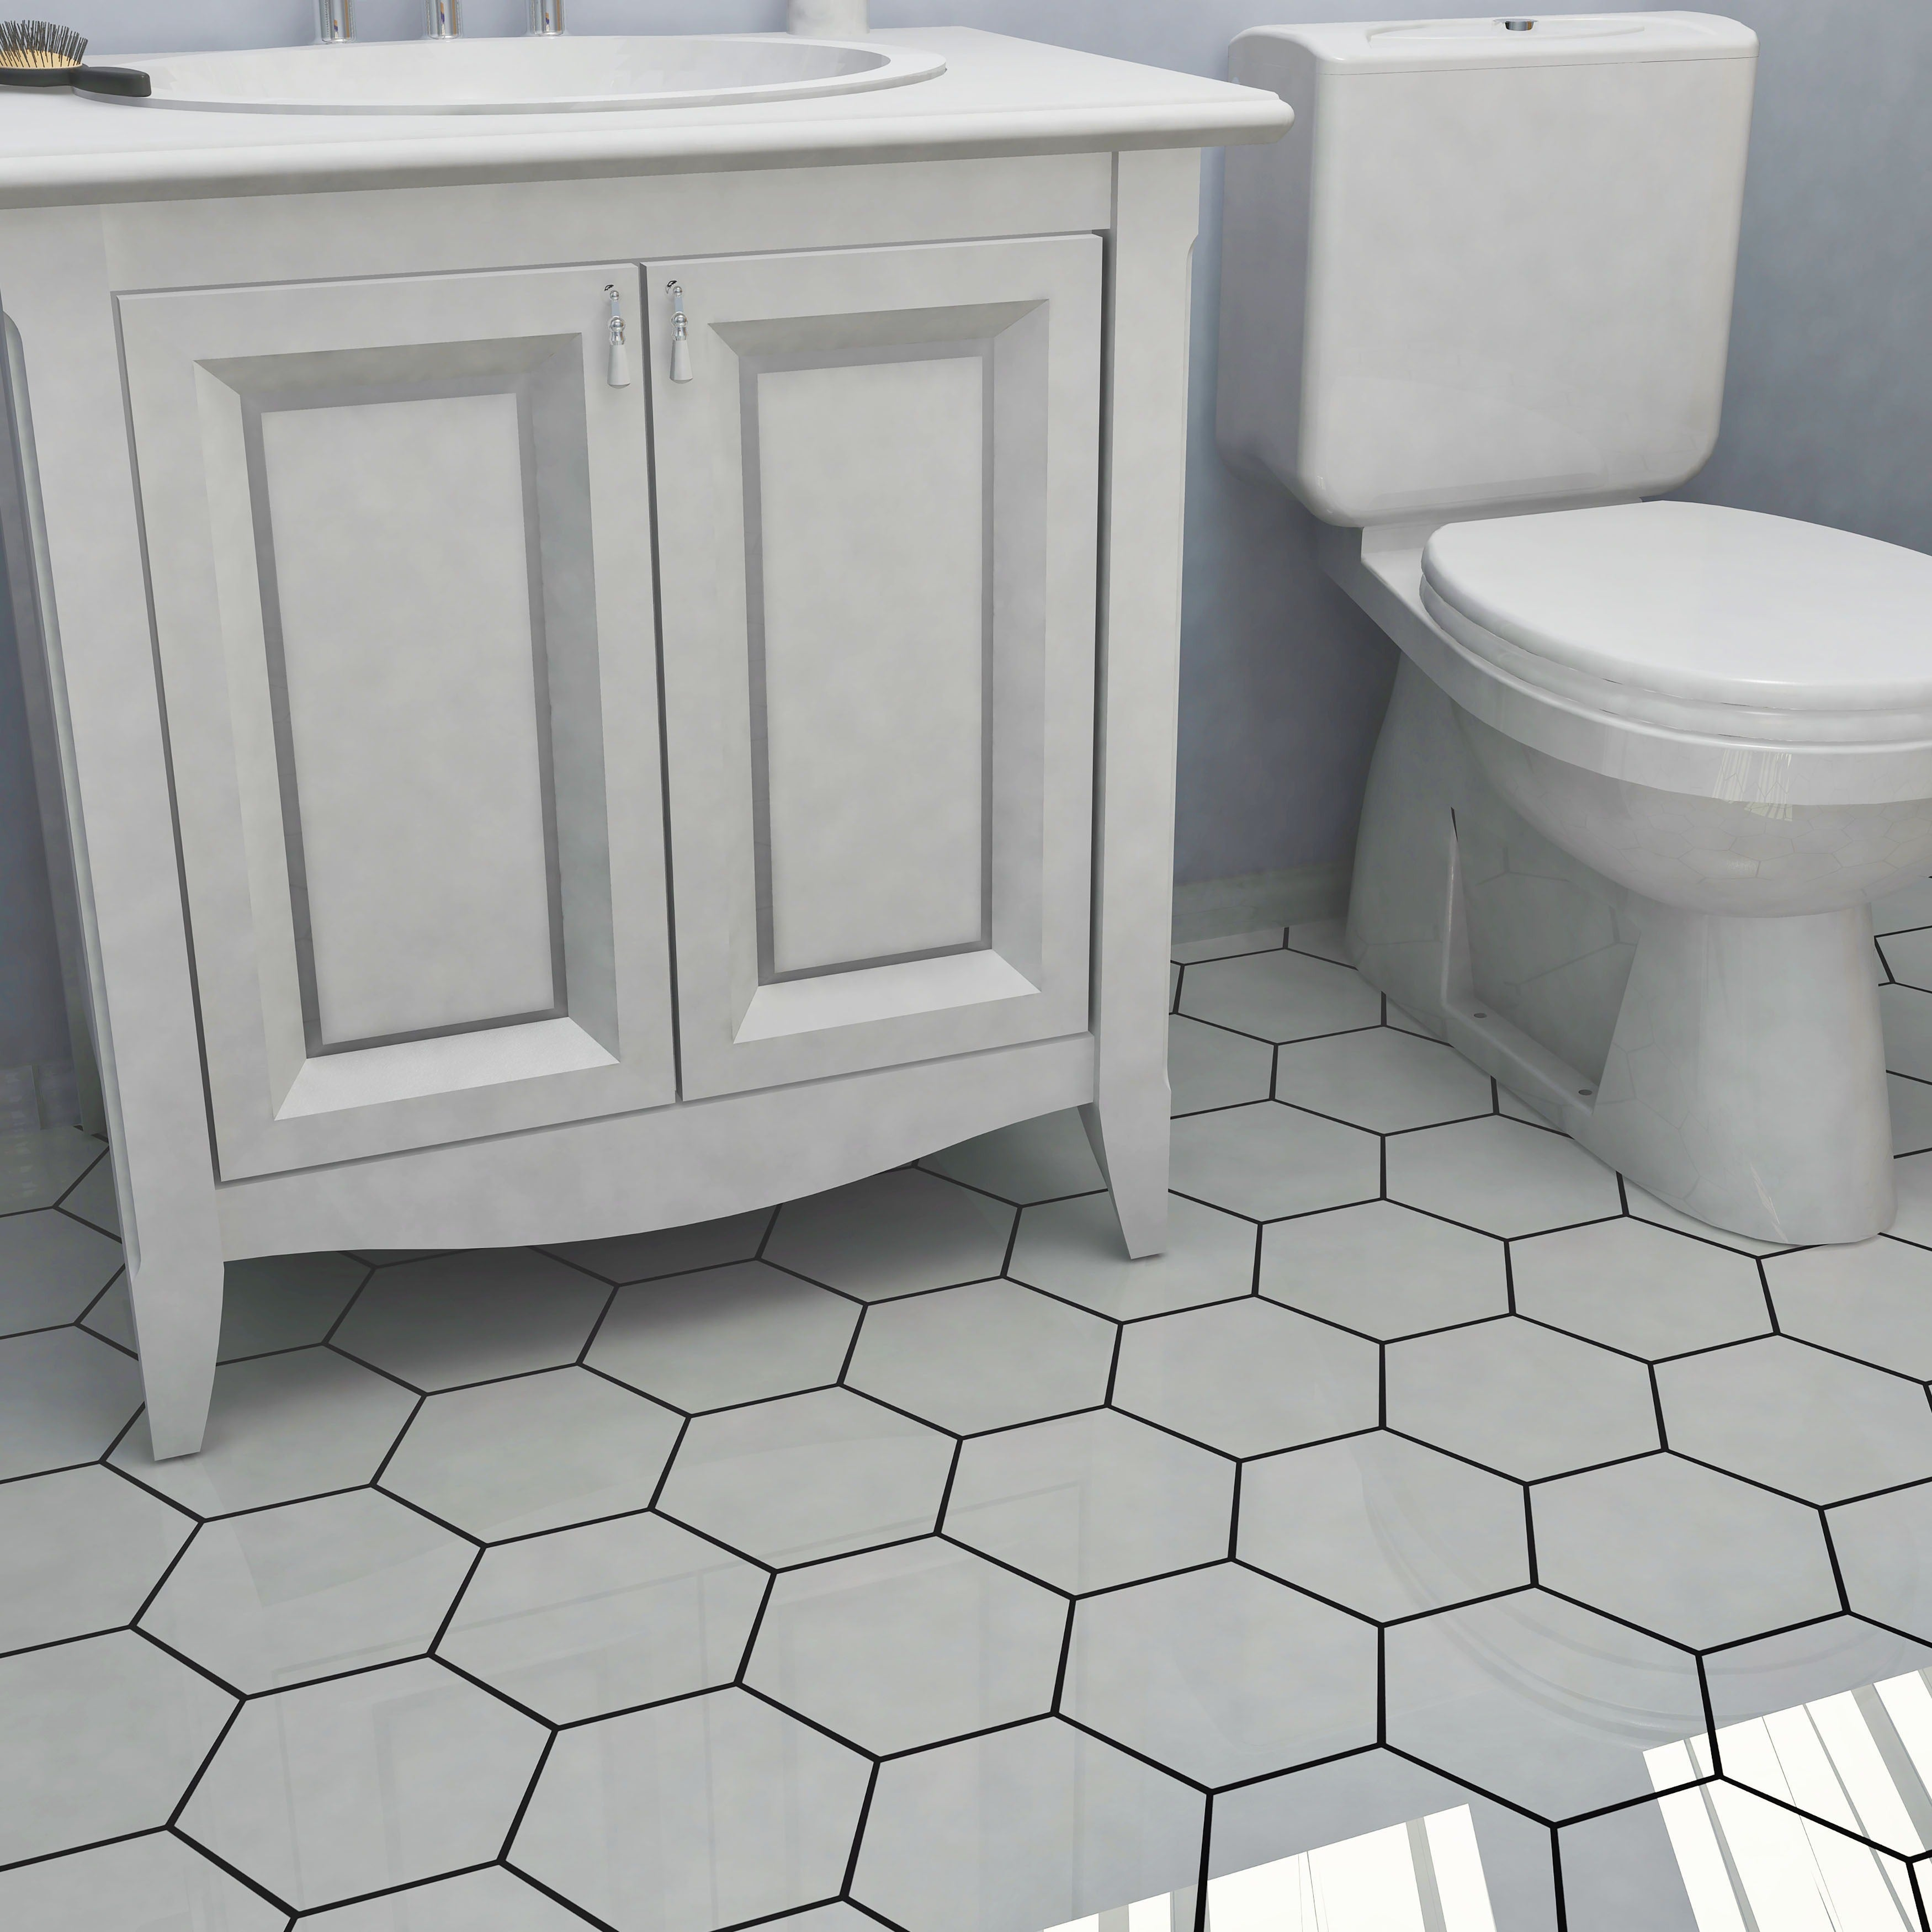 Somertile hextile matte grey porcelain 7x8 inch floor and wall tiles somertile 7x8 inch hextile matte blanco porcelain floor and wall tile 14 tiles dailygadgetfo Images